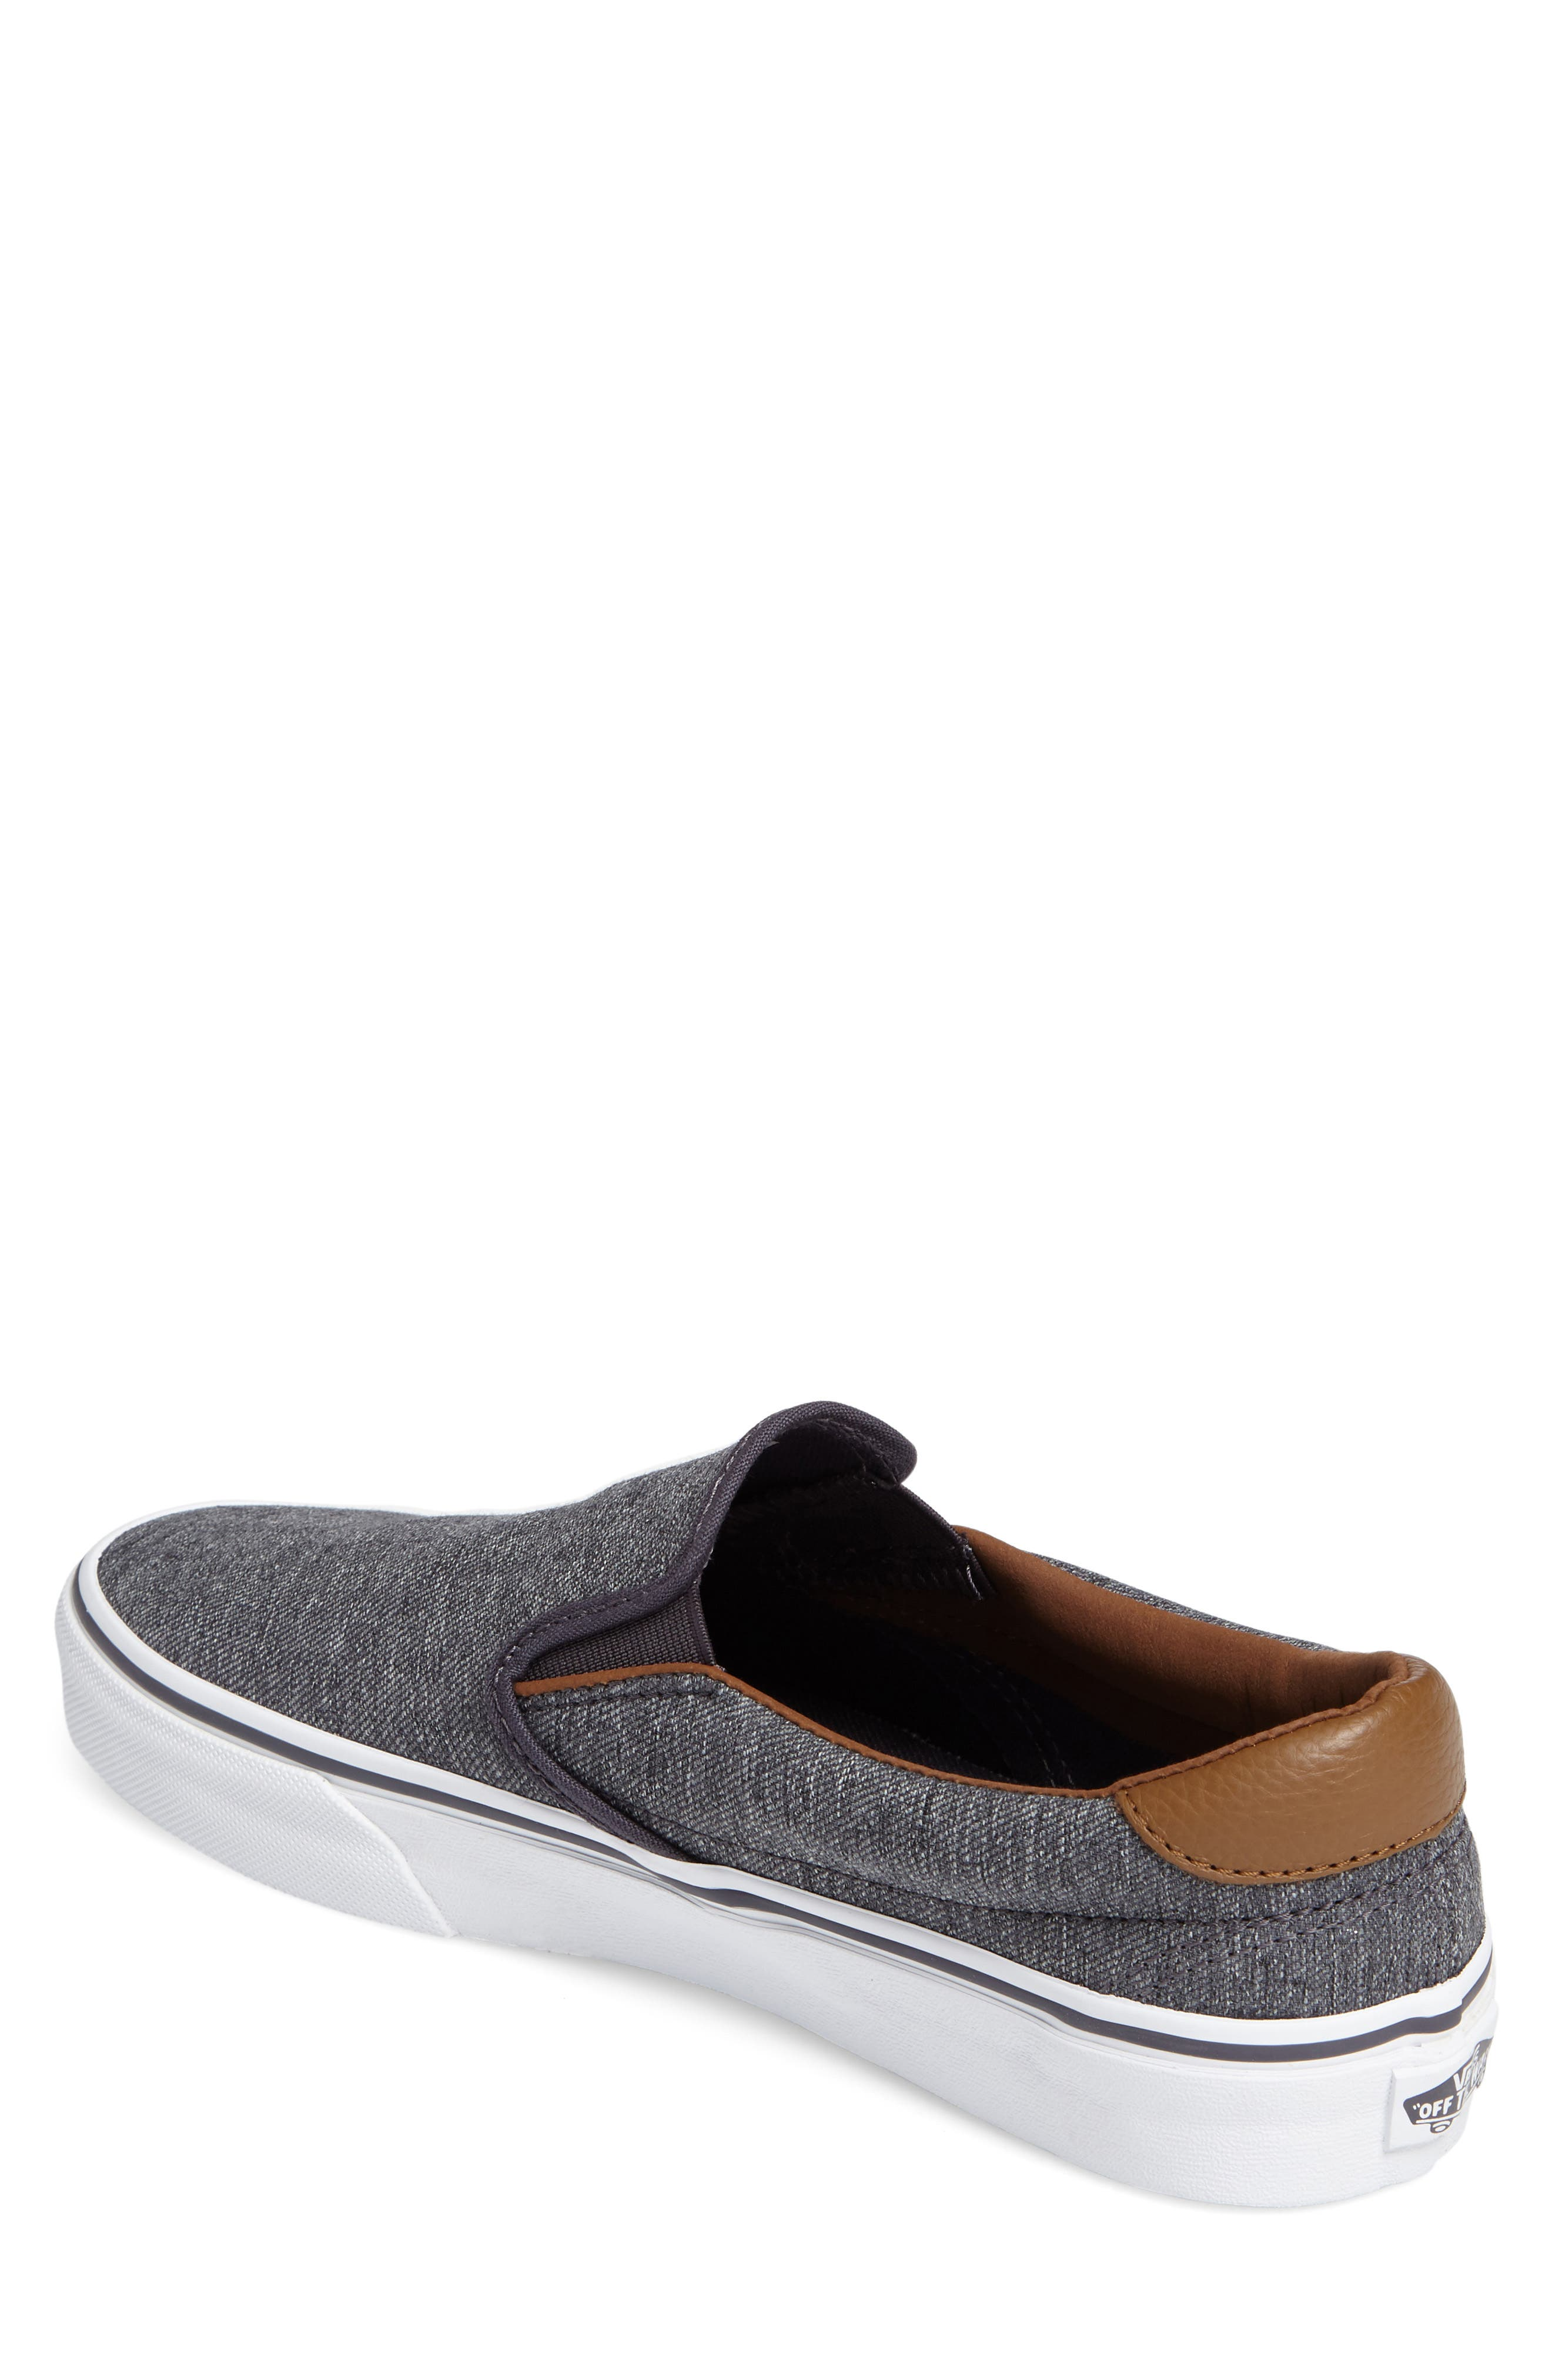 ,                             59 Classic Slip-On Sneaker,                             Alternate thumbnail 30, color,                             400